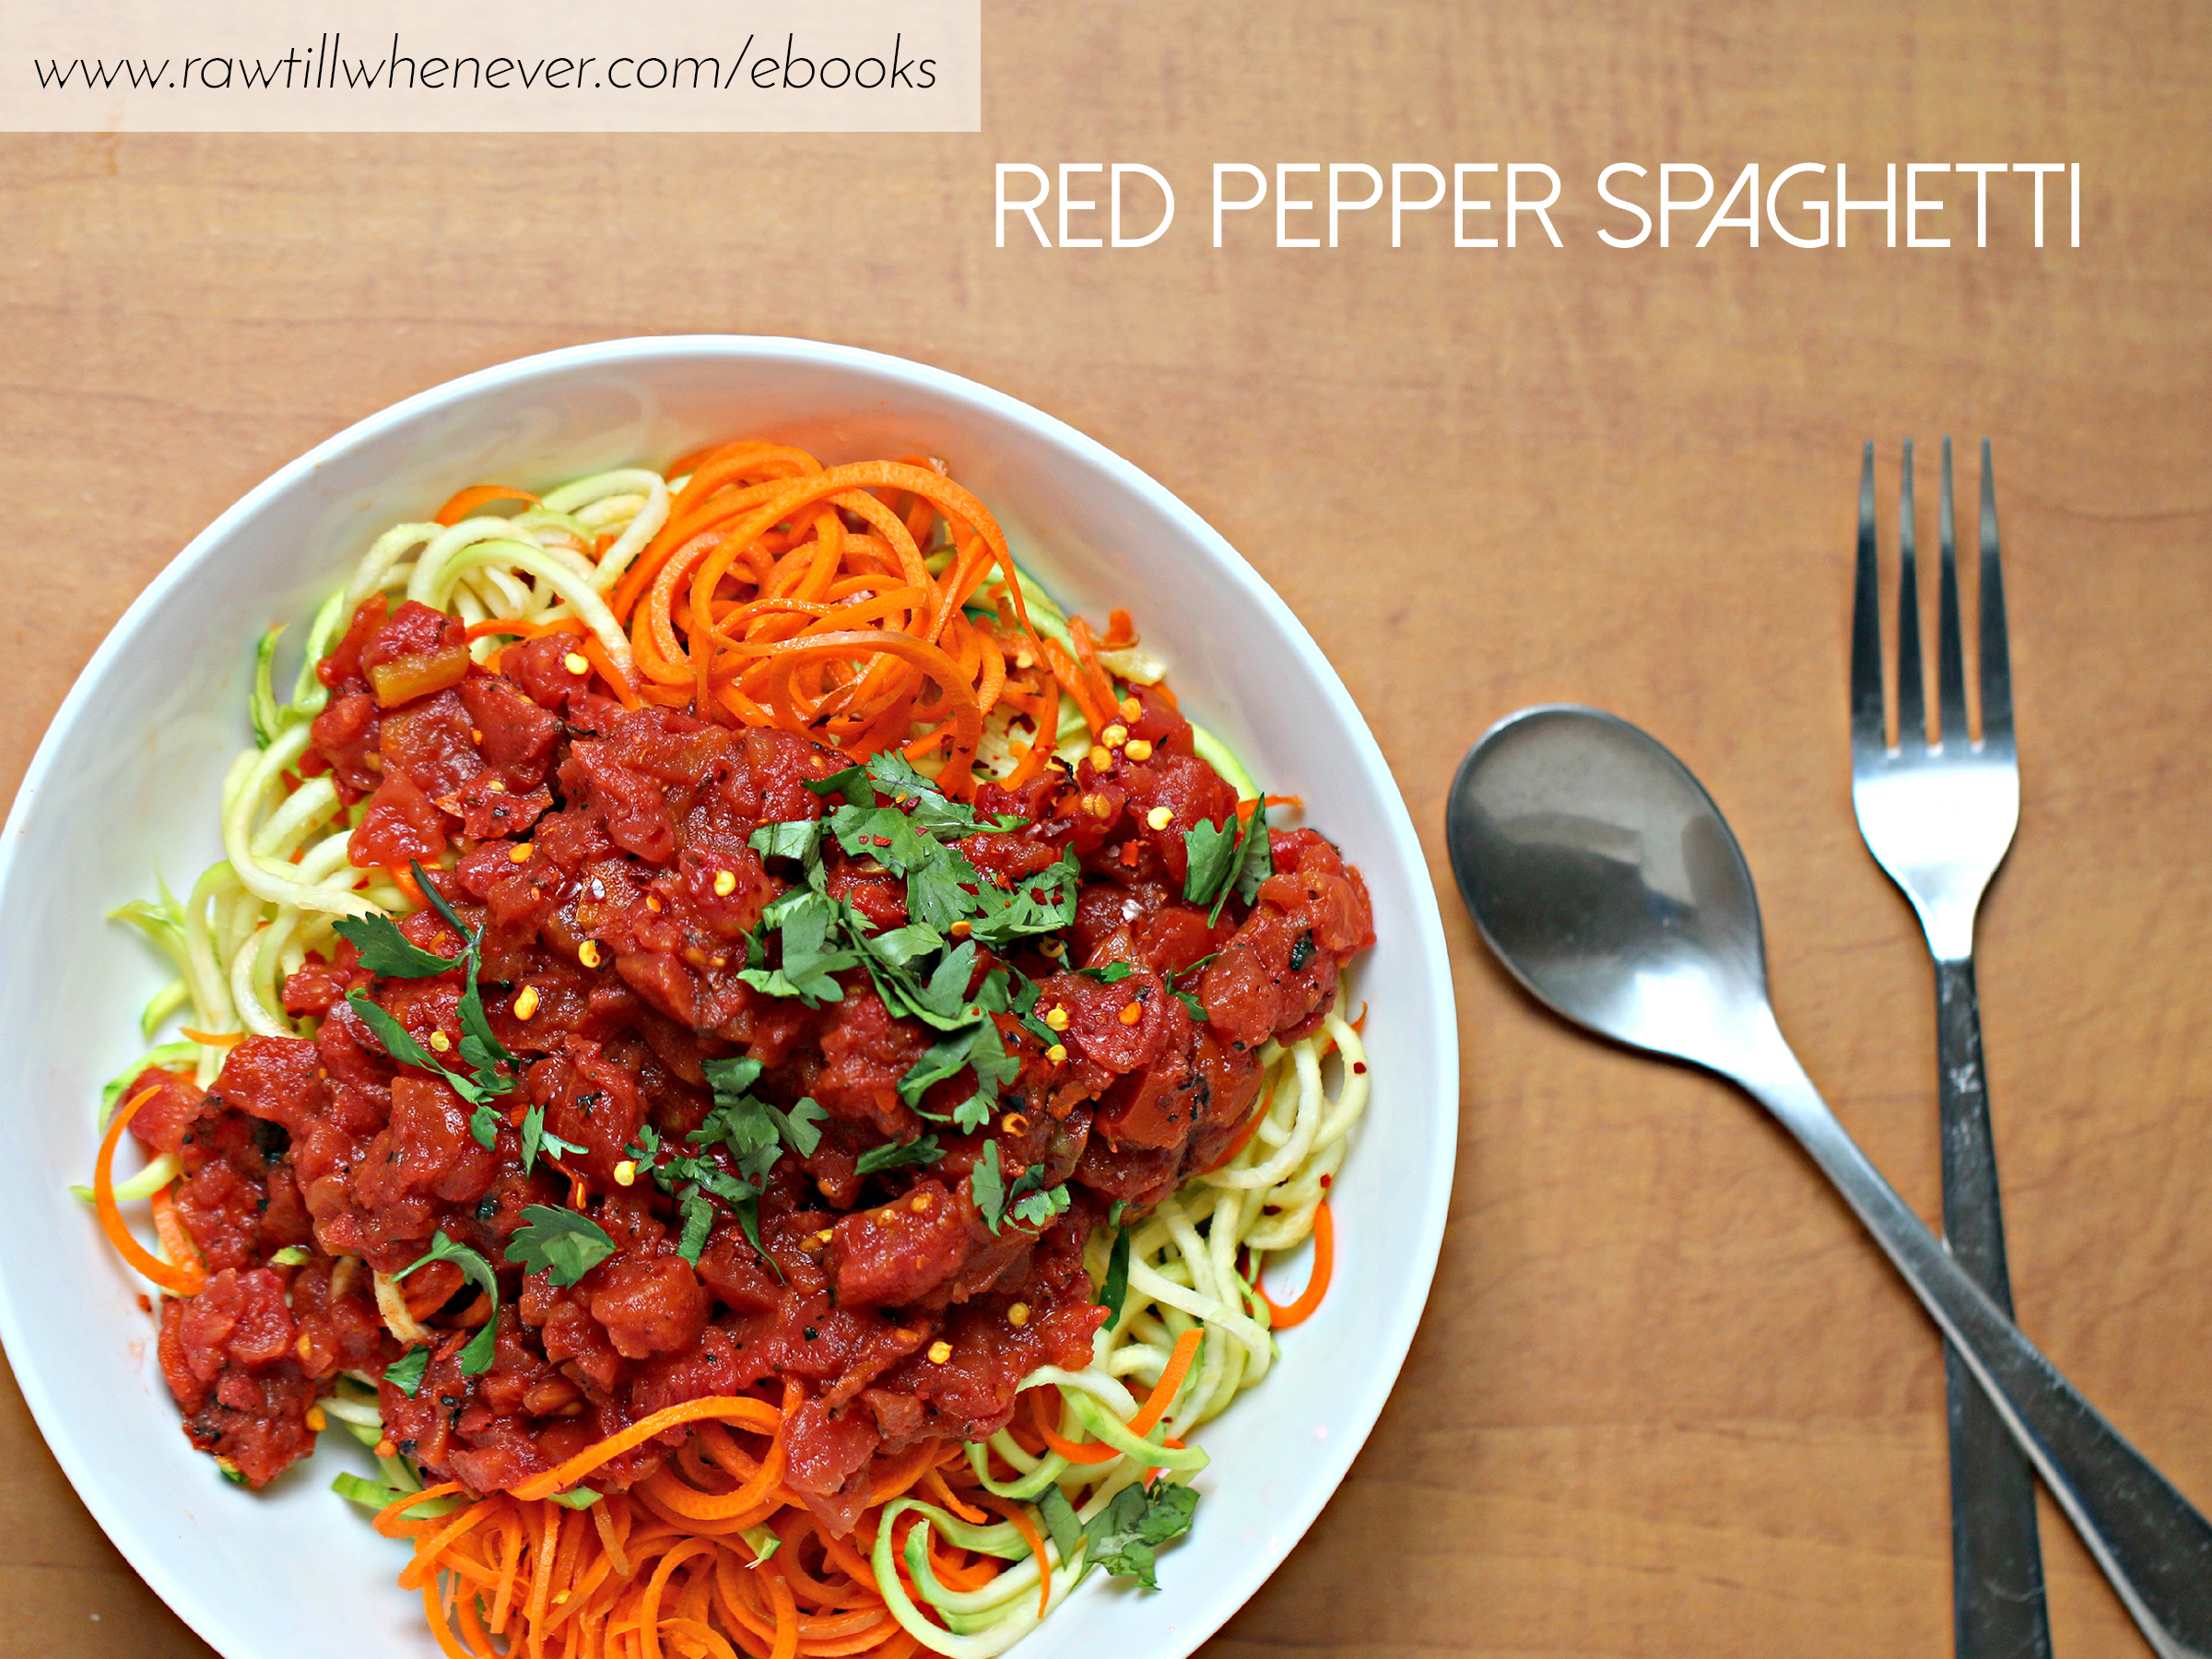 Red pepper spaghetti recipe featured from my raw vegan recipe book red pepper spaghetti recipe featured from my raw vegan recipe book ilikeitraw forumfinder Gallery